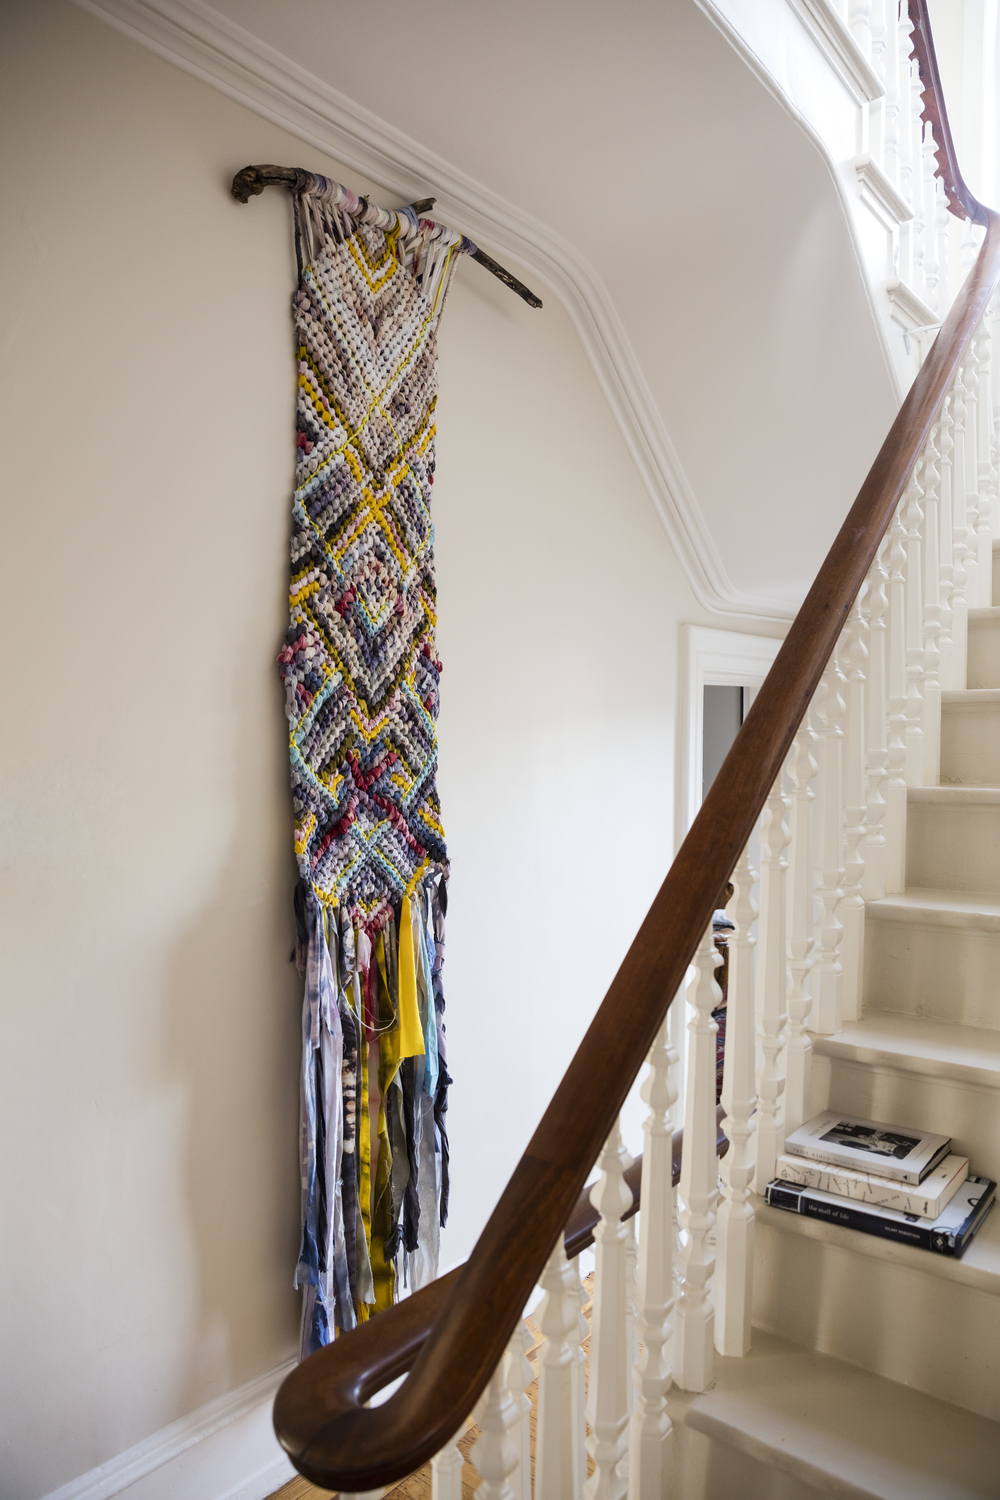 A stand-out textile piece in the hallway.